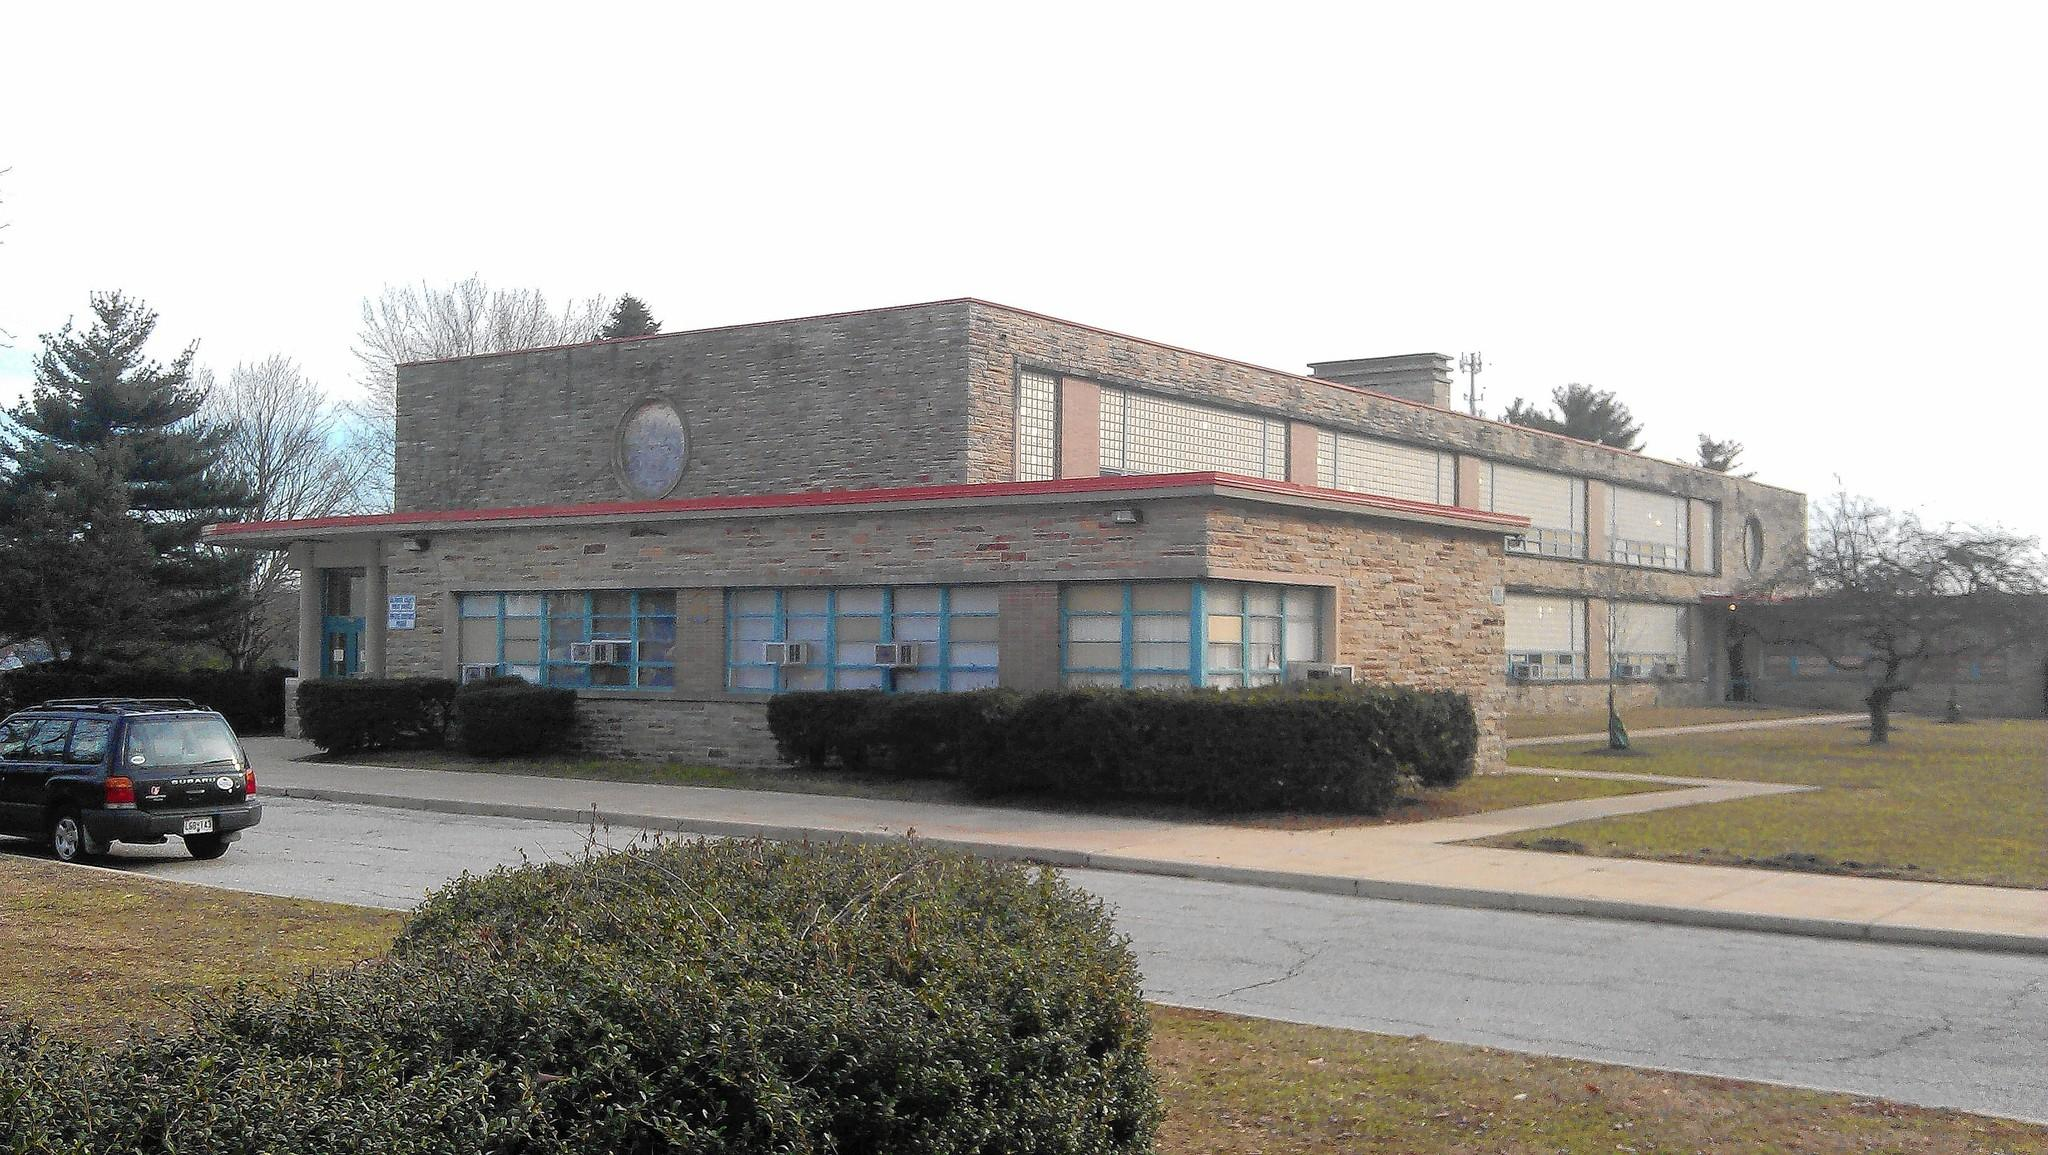 Baltimore County Public Schools Superintendent Dallas Dance has given his assurance that the Loch Raven Elementary School building, which operates as a community center, will not be demolished to make room for a new school.